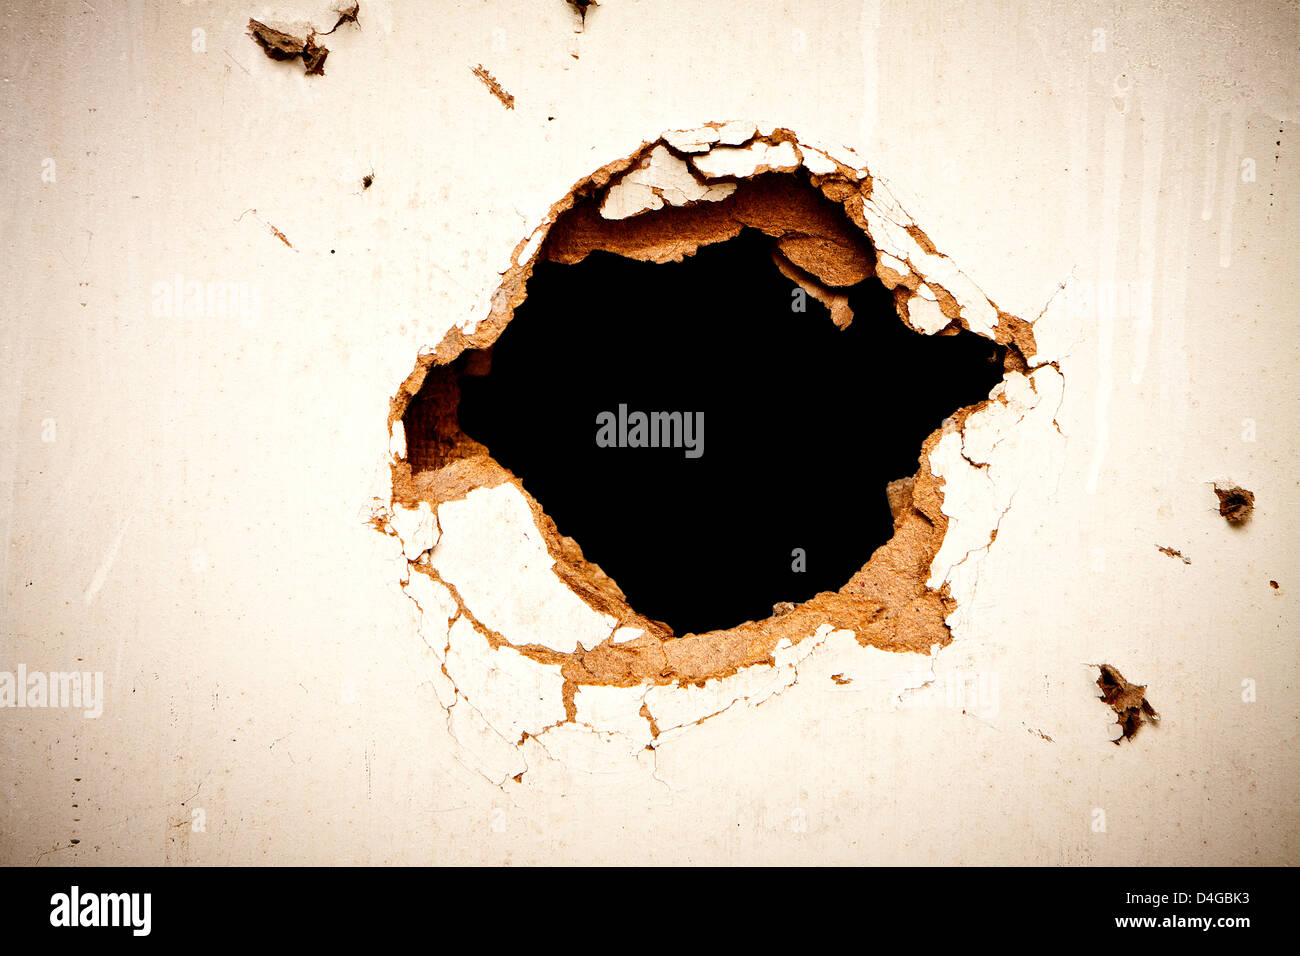 Hole in the fibreboard on black background. - Stock Image